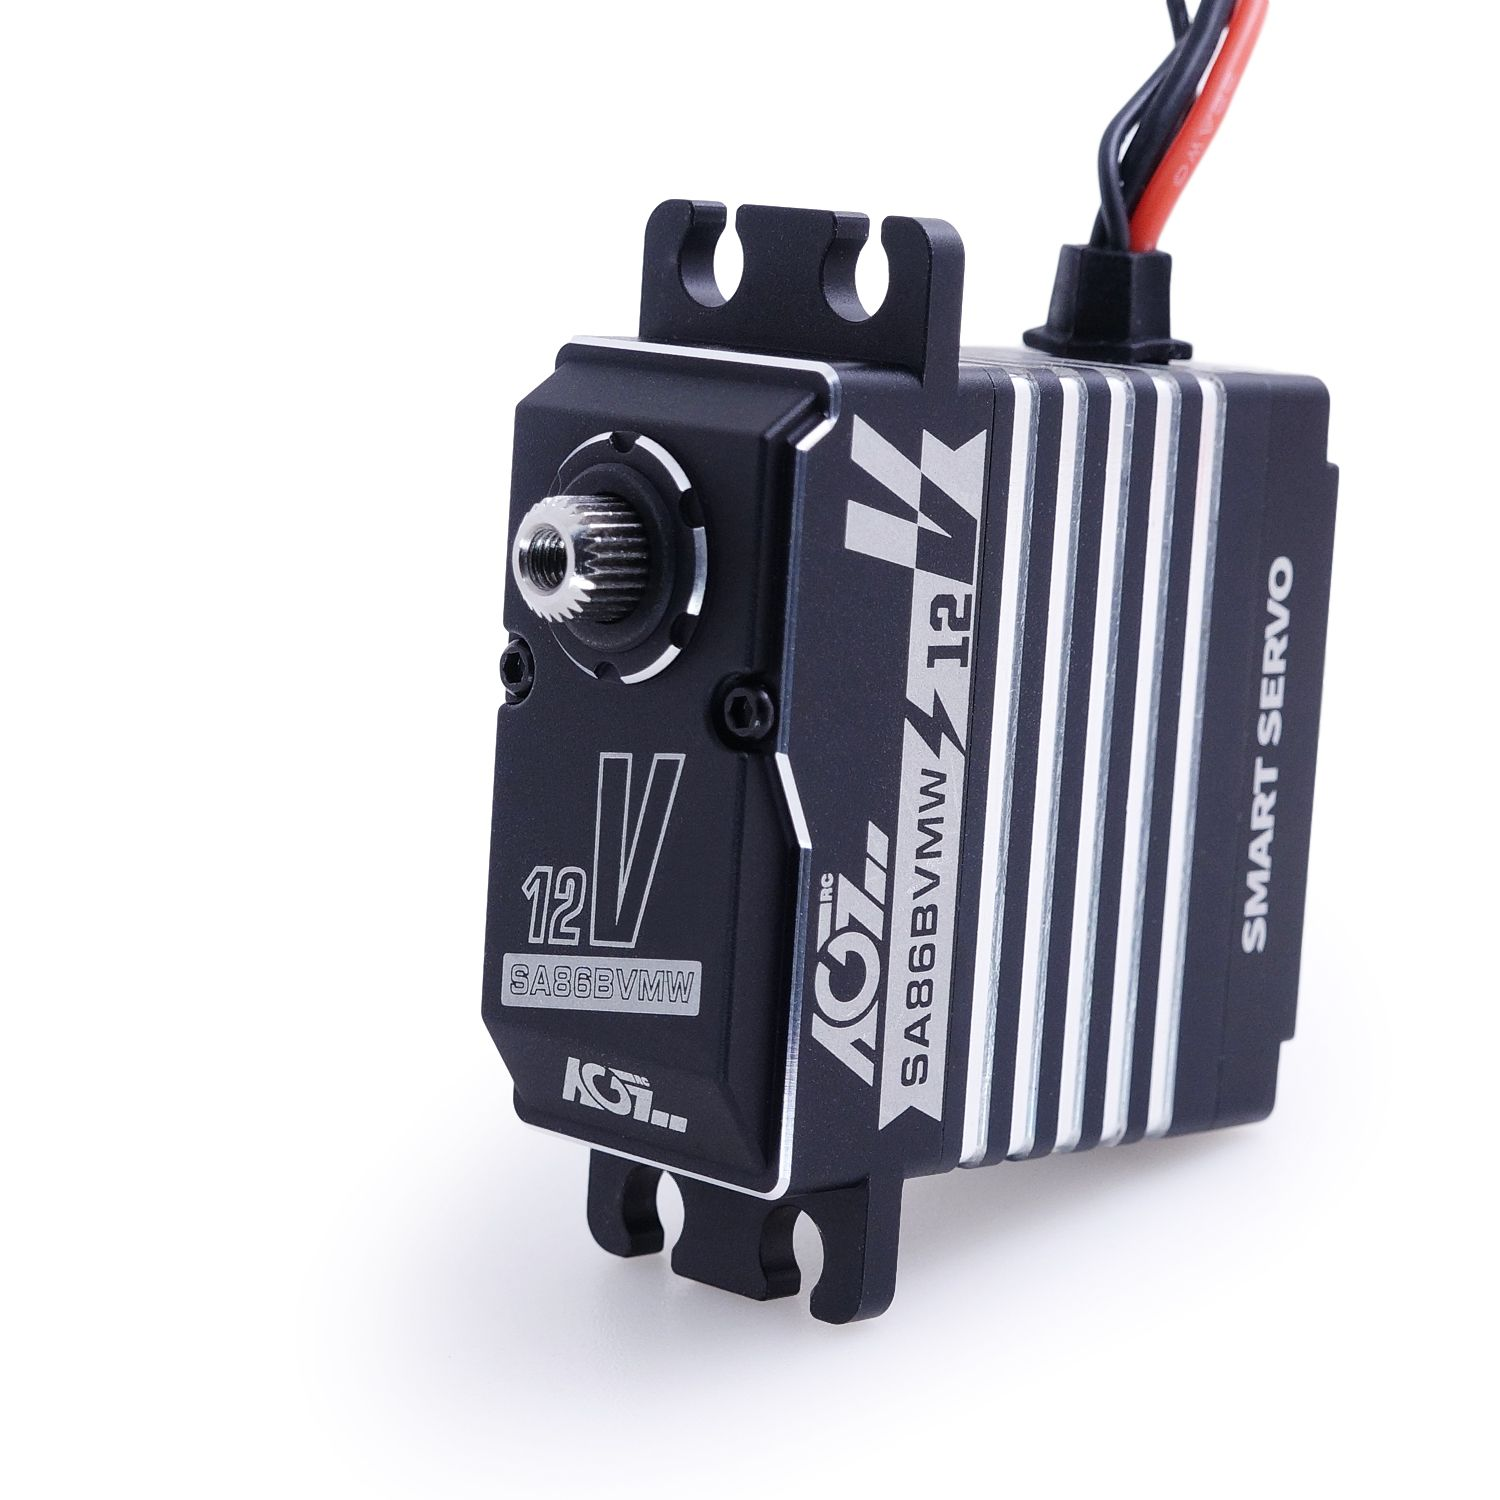 AGFrc SA86BVMW 60KG Super Torque Aluminum Case 12V Smart Servo With Winch Function